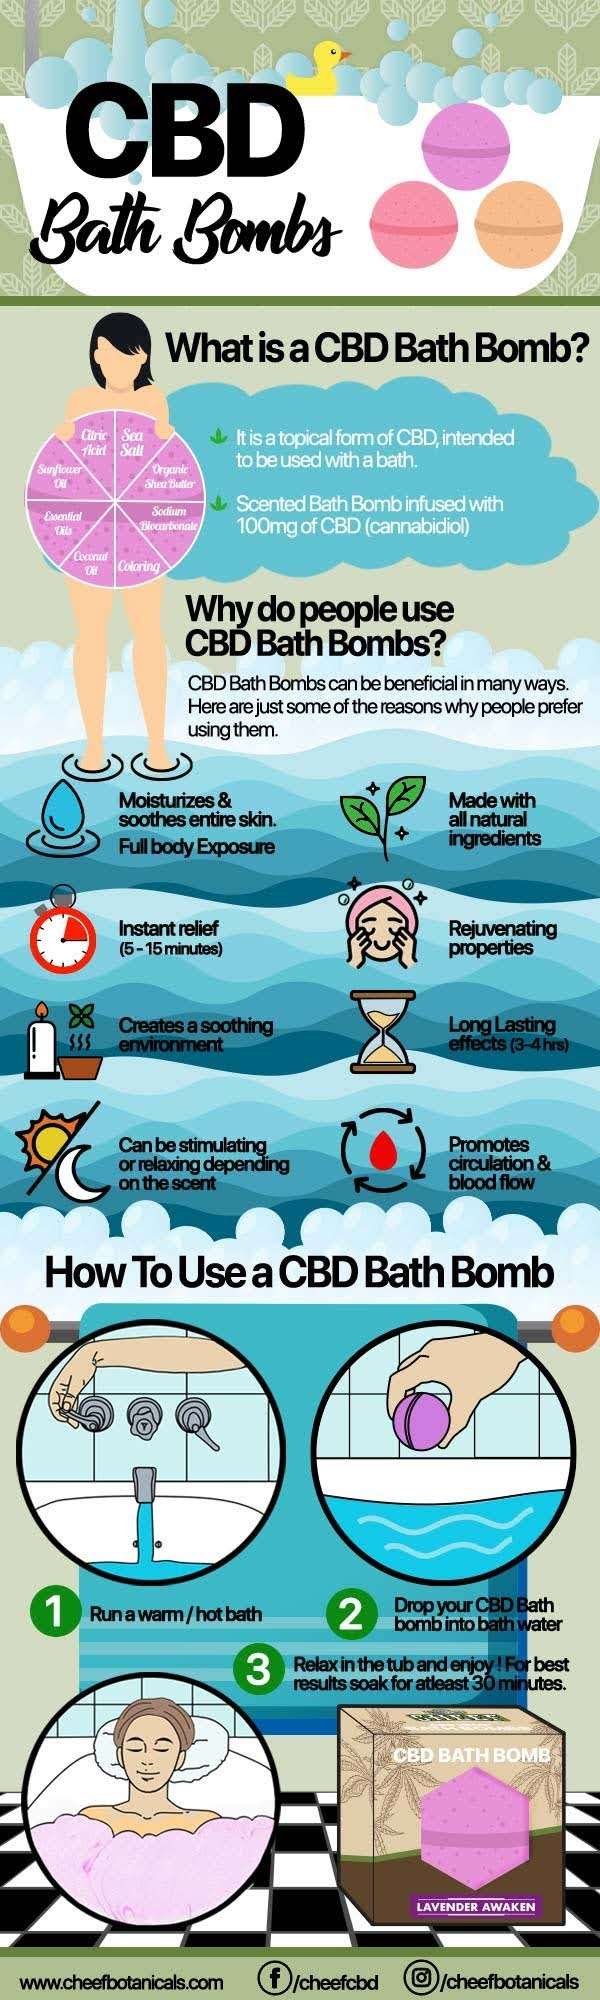 What is a CBD Bath Bomb? #infographic ~ Visualistan